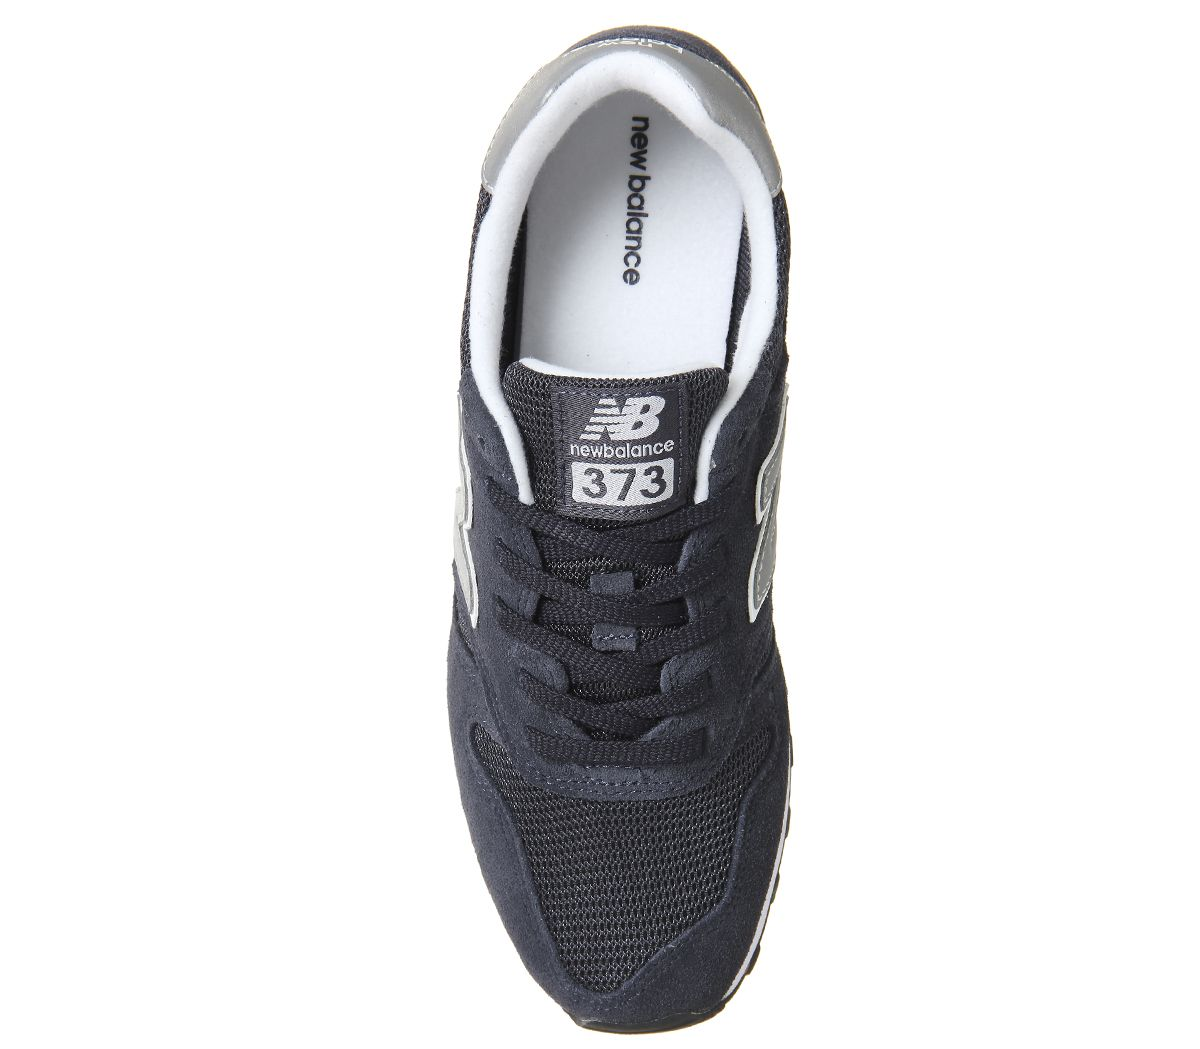 sports shoes 6bffd 71b9e Details about Mens New Balance 373 Navy Silver Trainers Shoes